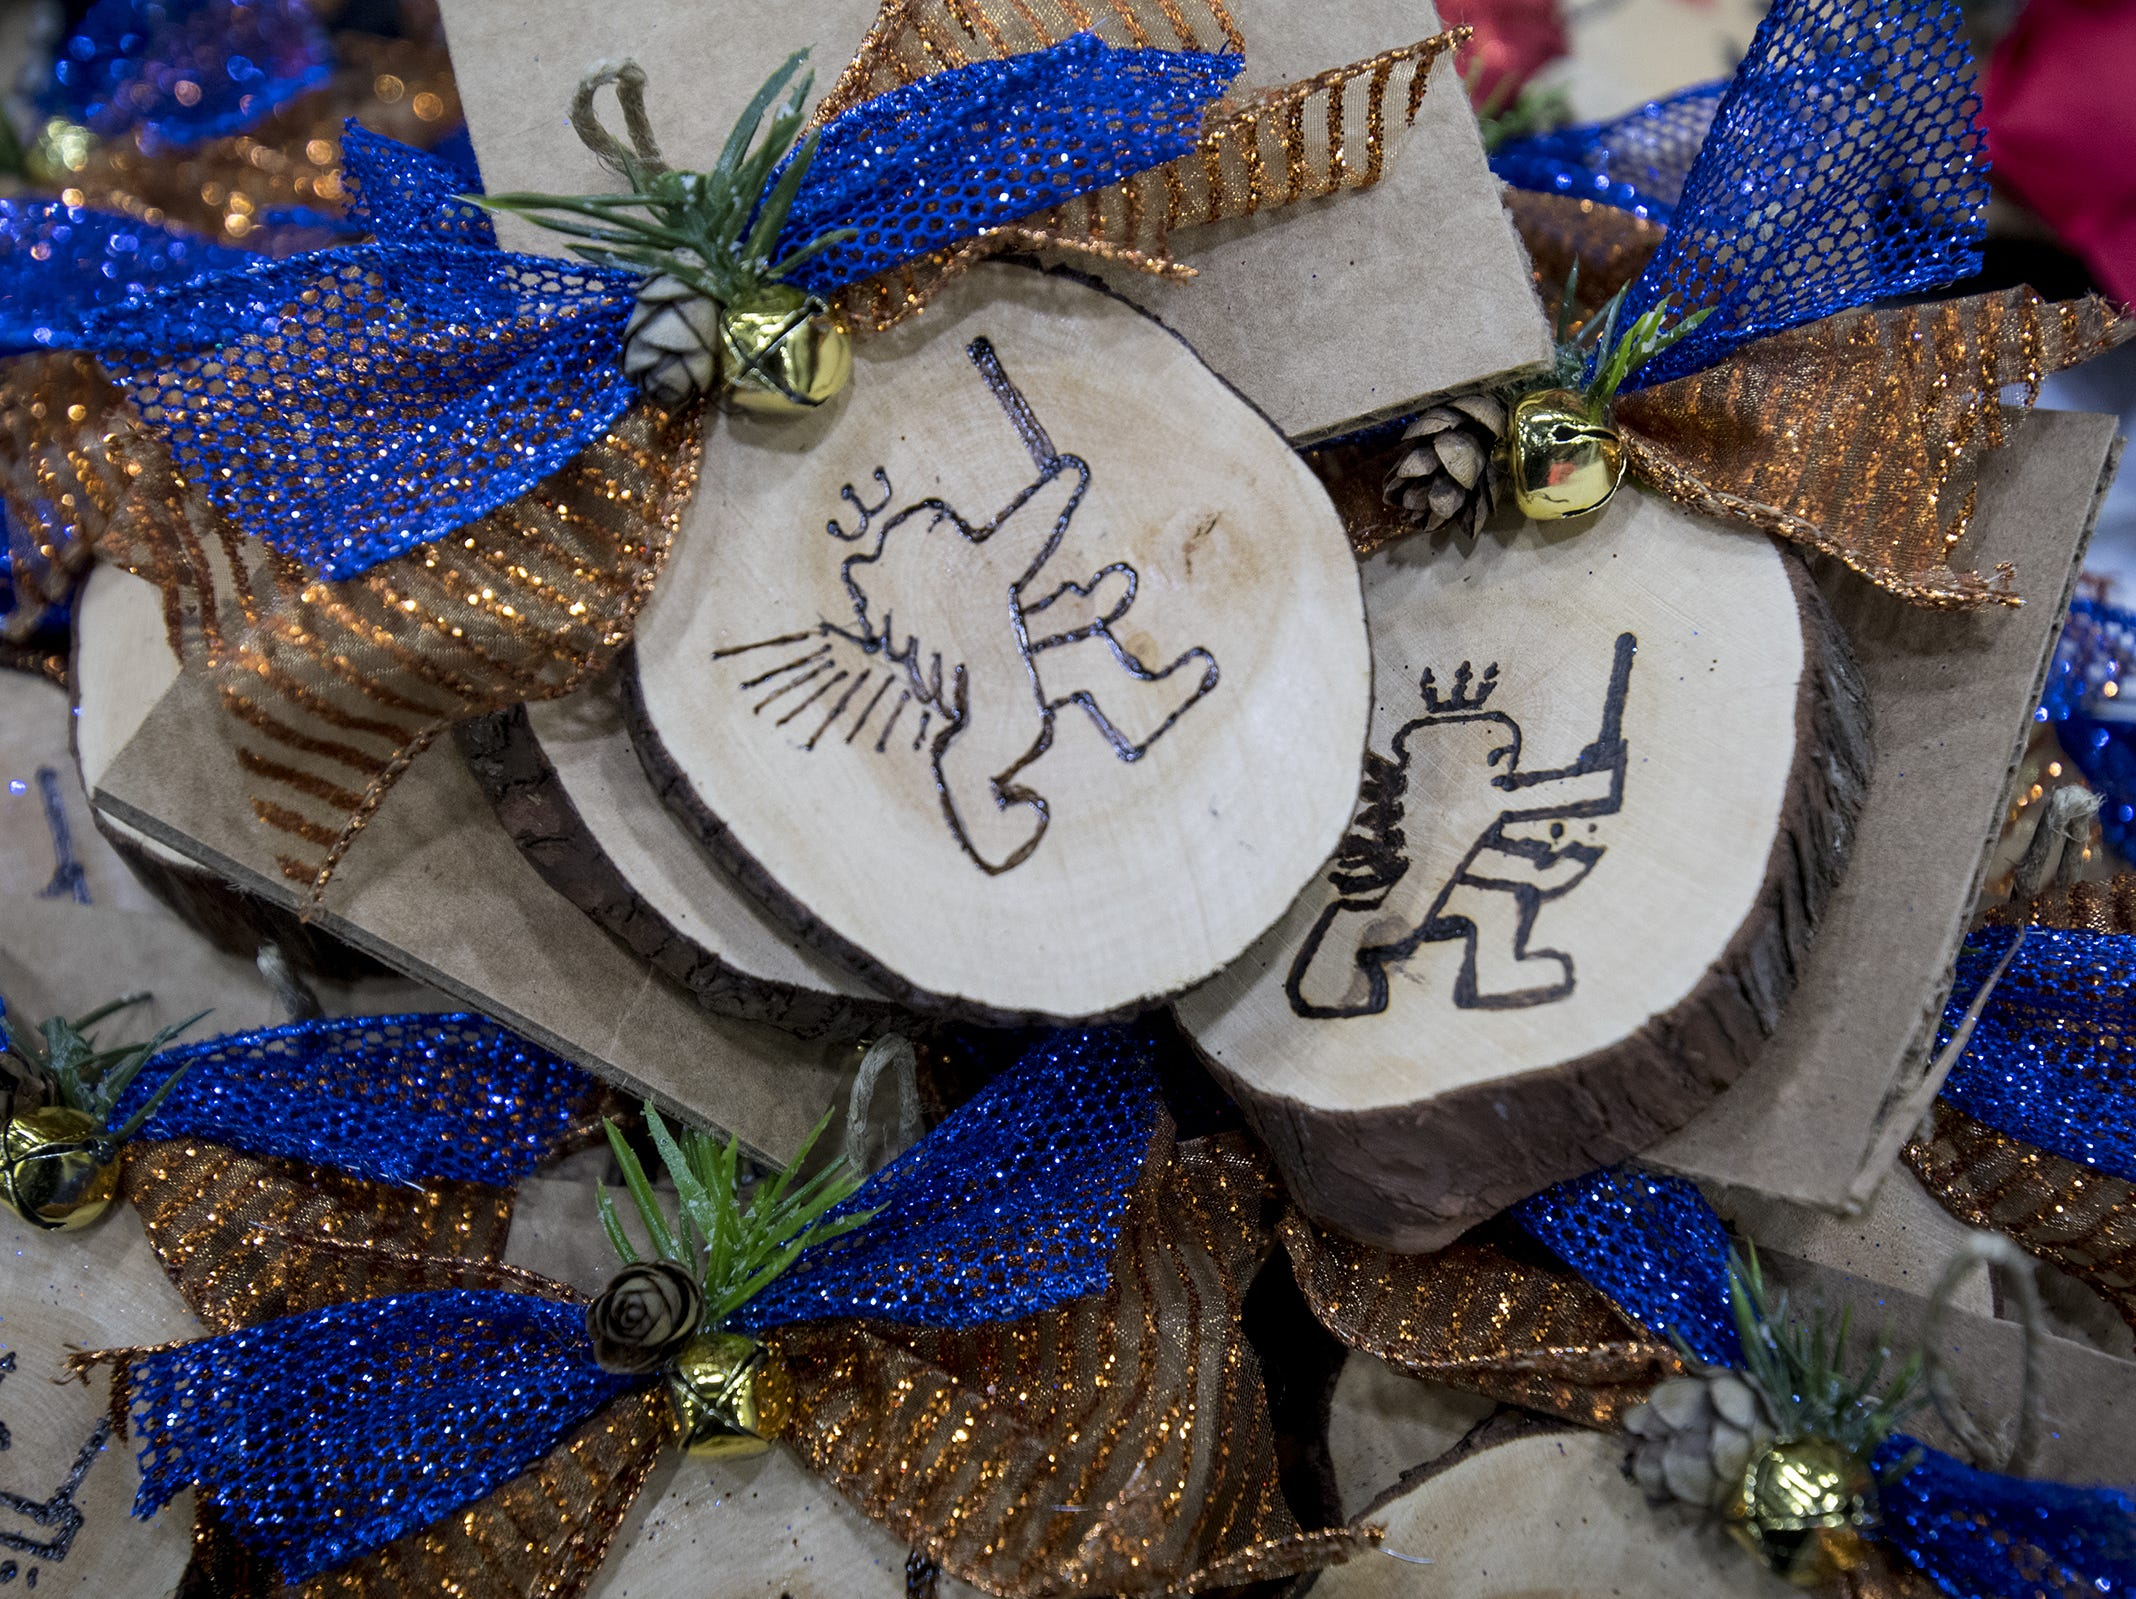 Cincinnati Beer Soap sells Cincinnati-themed ornaments as well as candles and other items during the Greater Cincinnati Holiday Market at the Duke Energy Center Friday, November 2, 2018 in Cincinnati, Ohio.